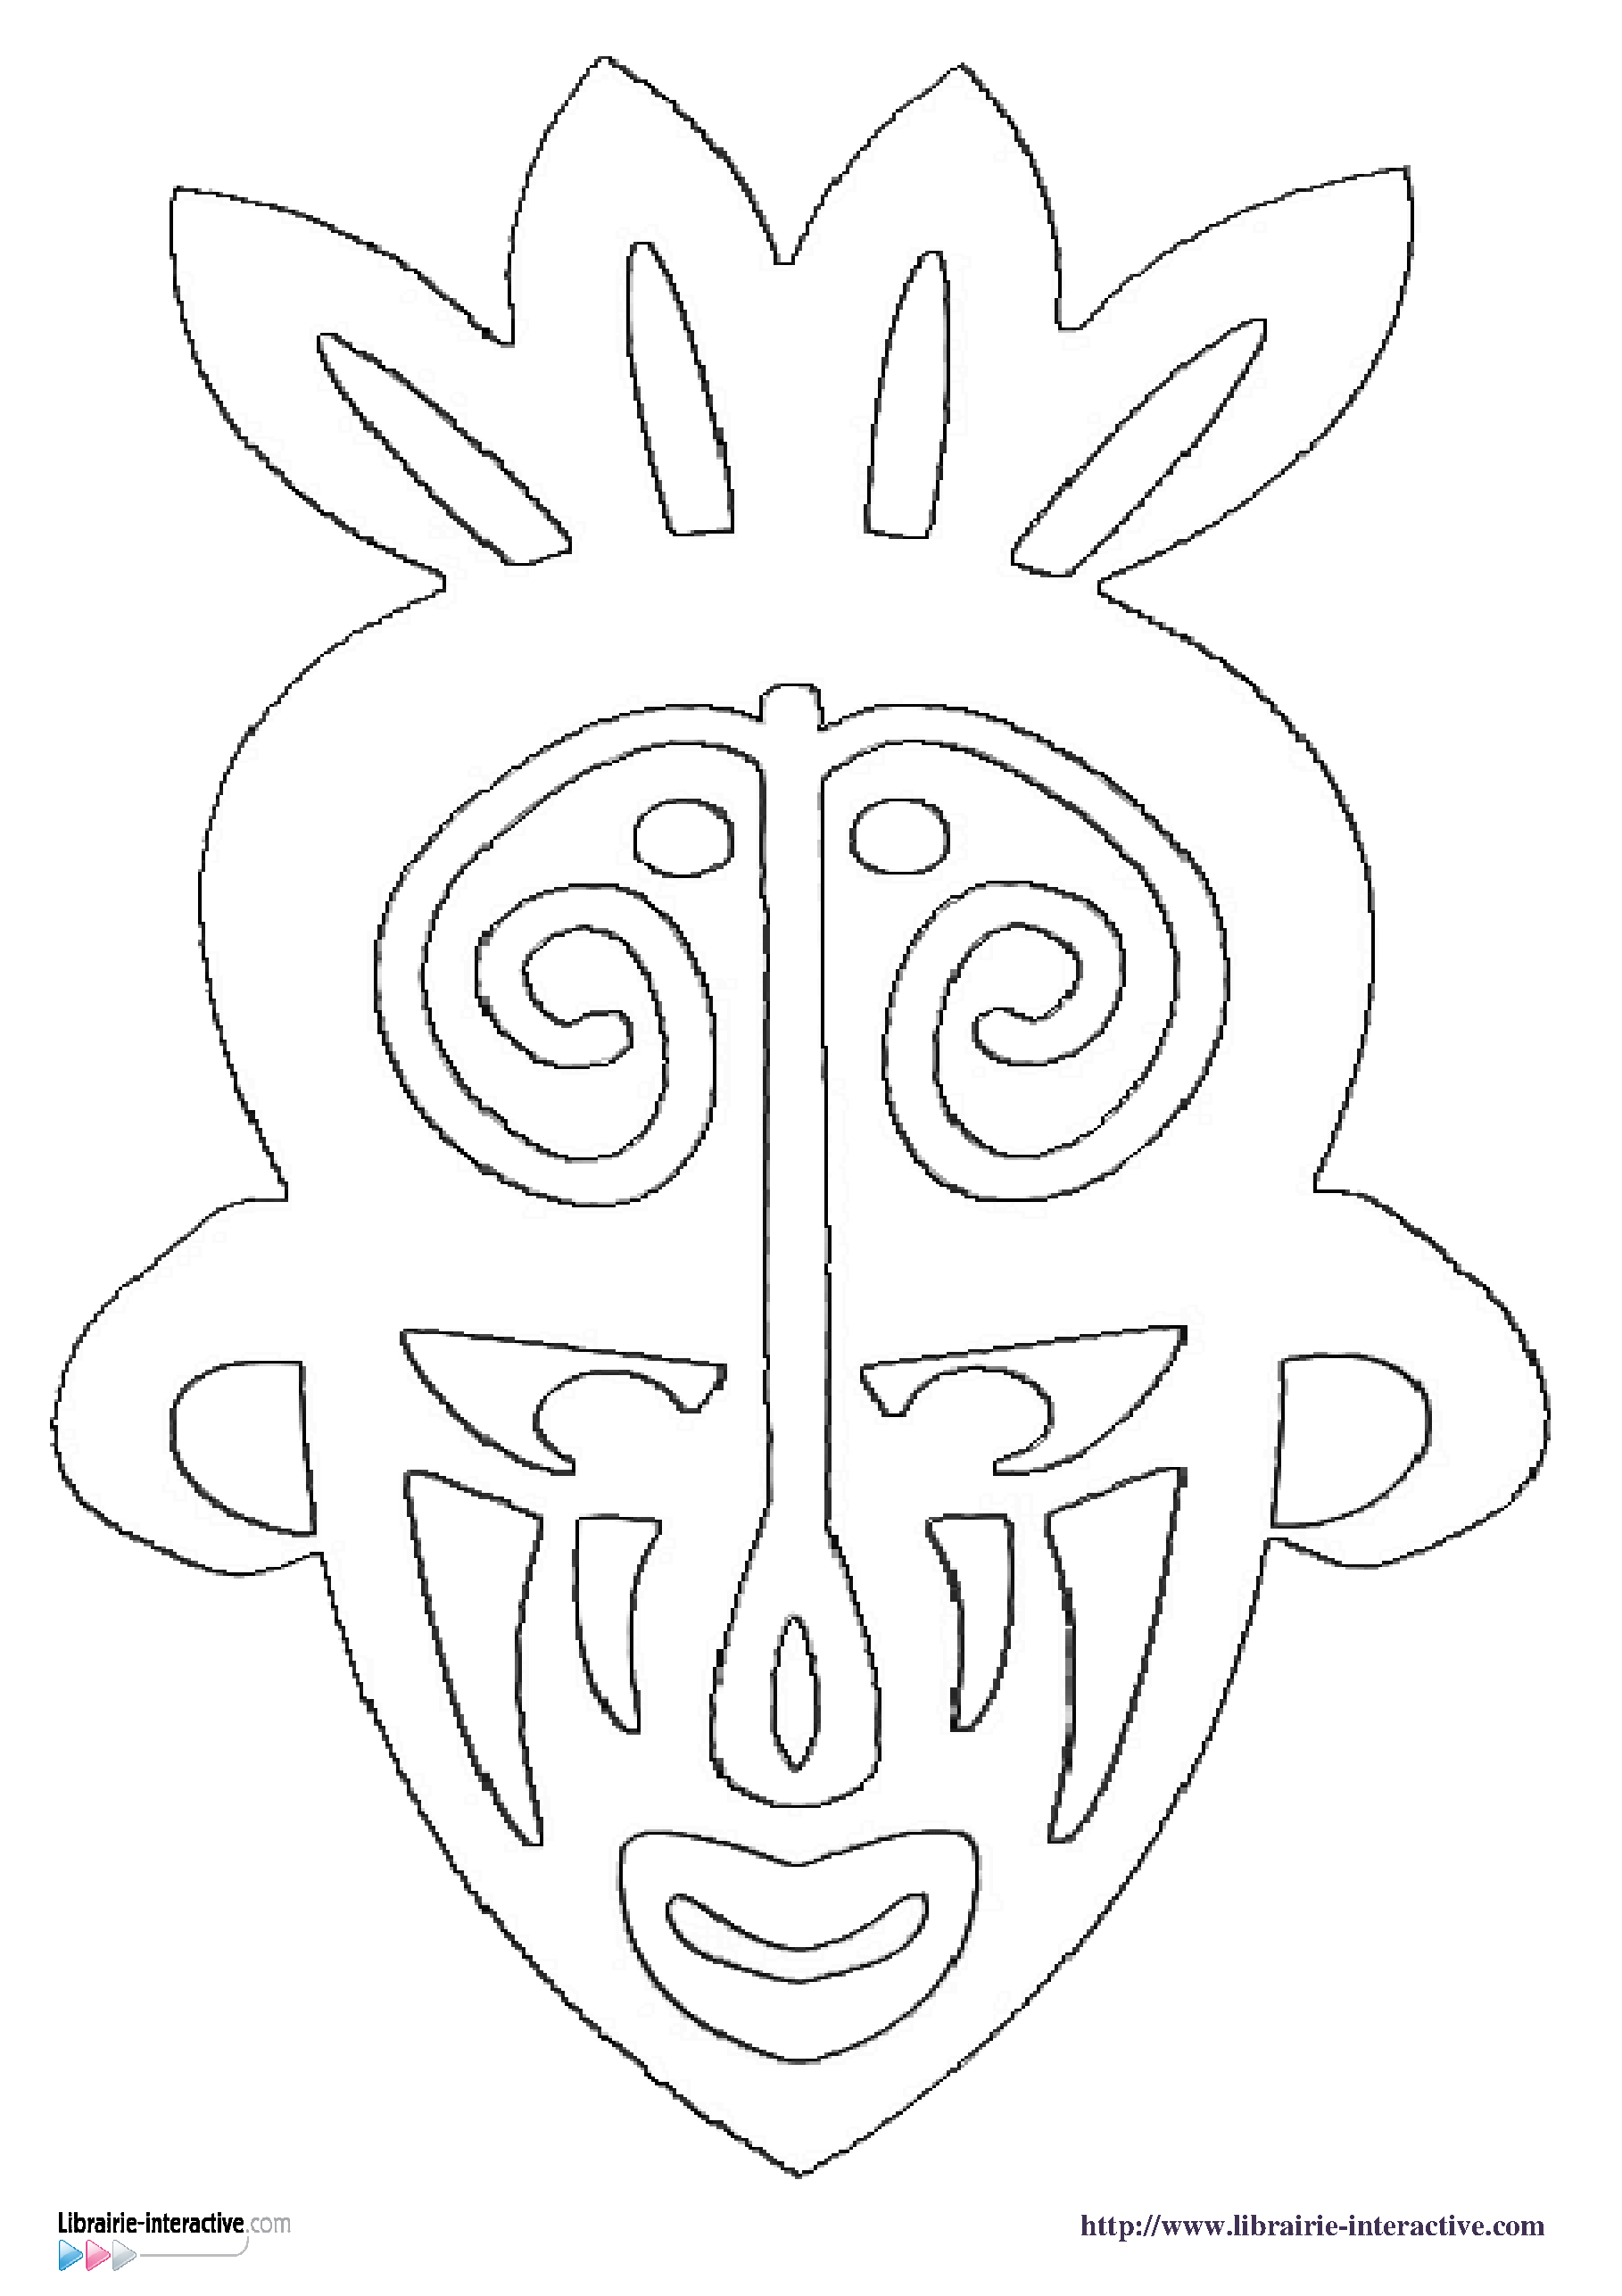 Coloriage masque africain maternelle imprimer et obtenir - Masque africain a imprimer ...